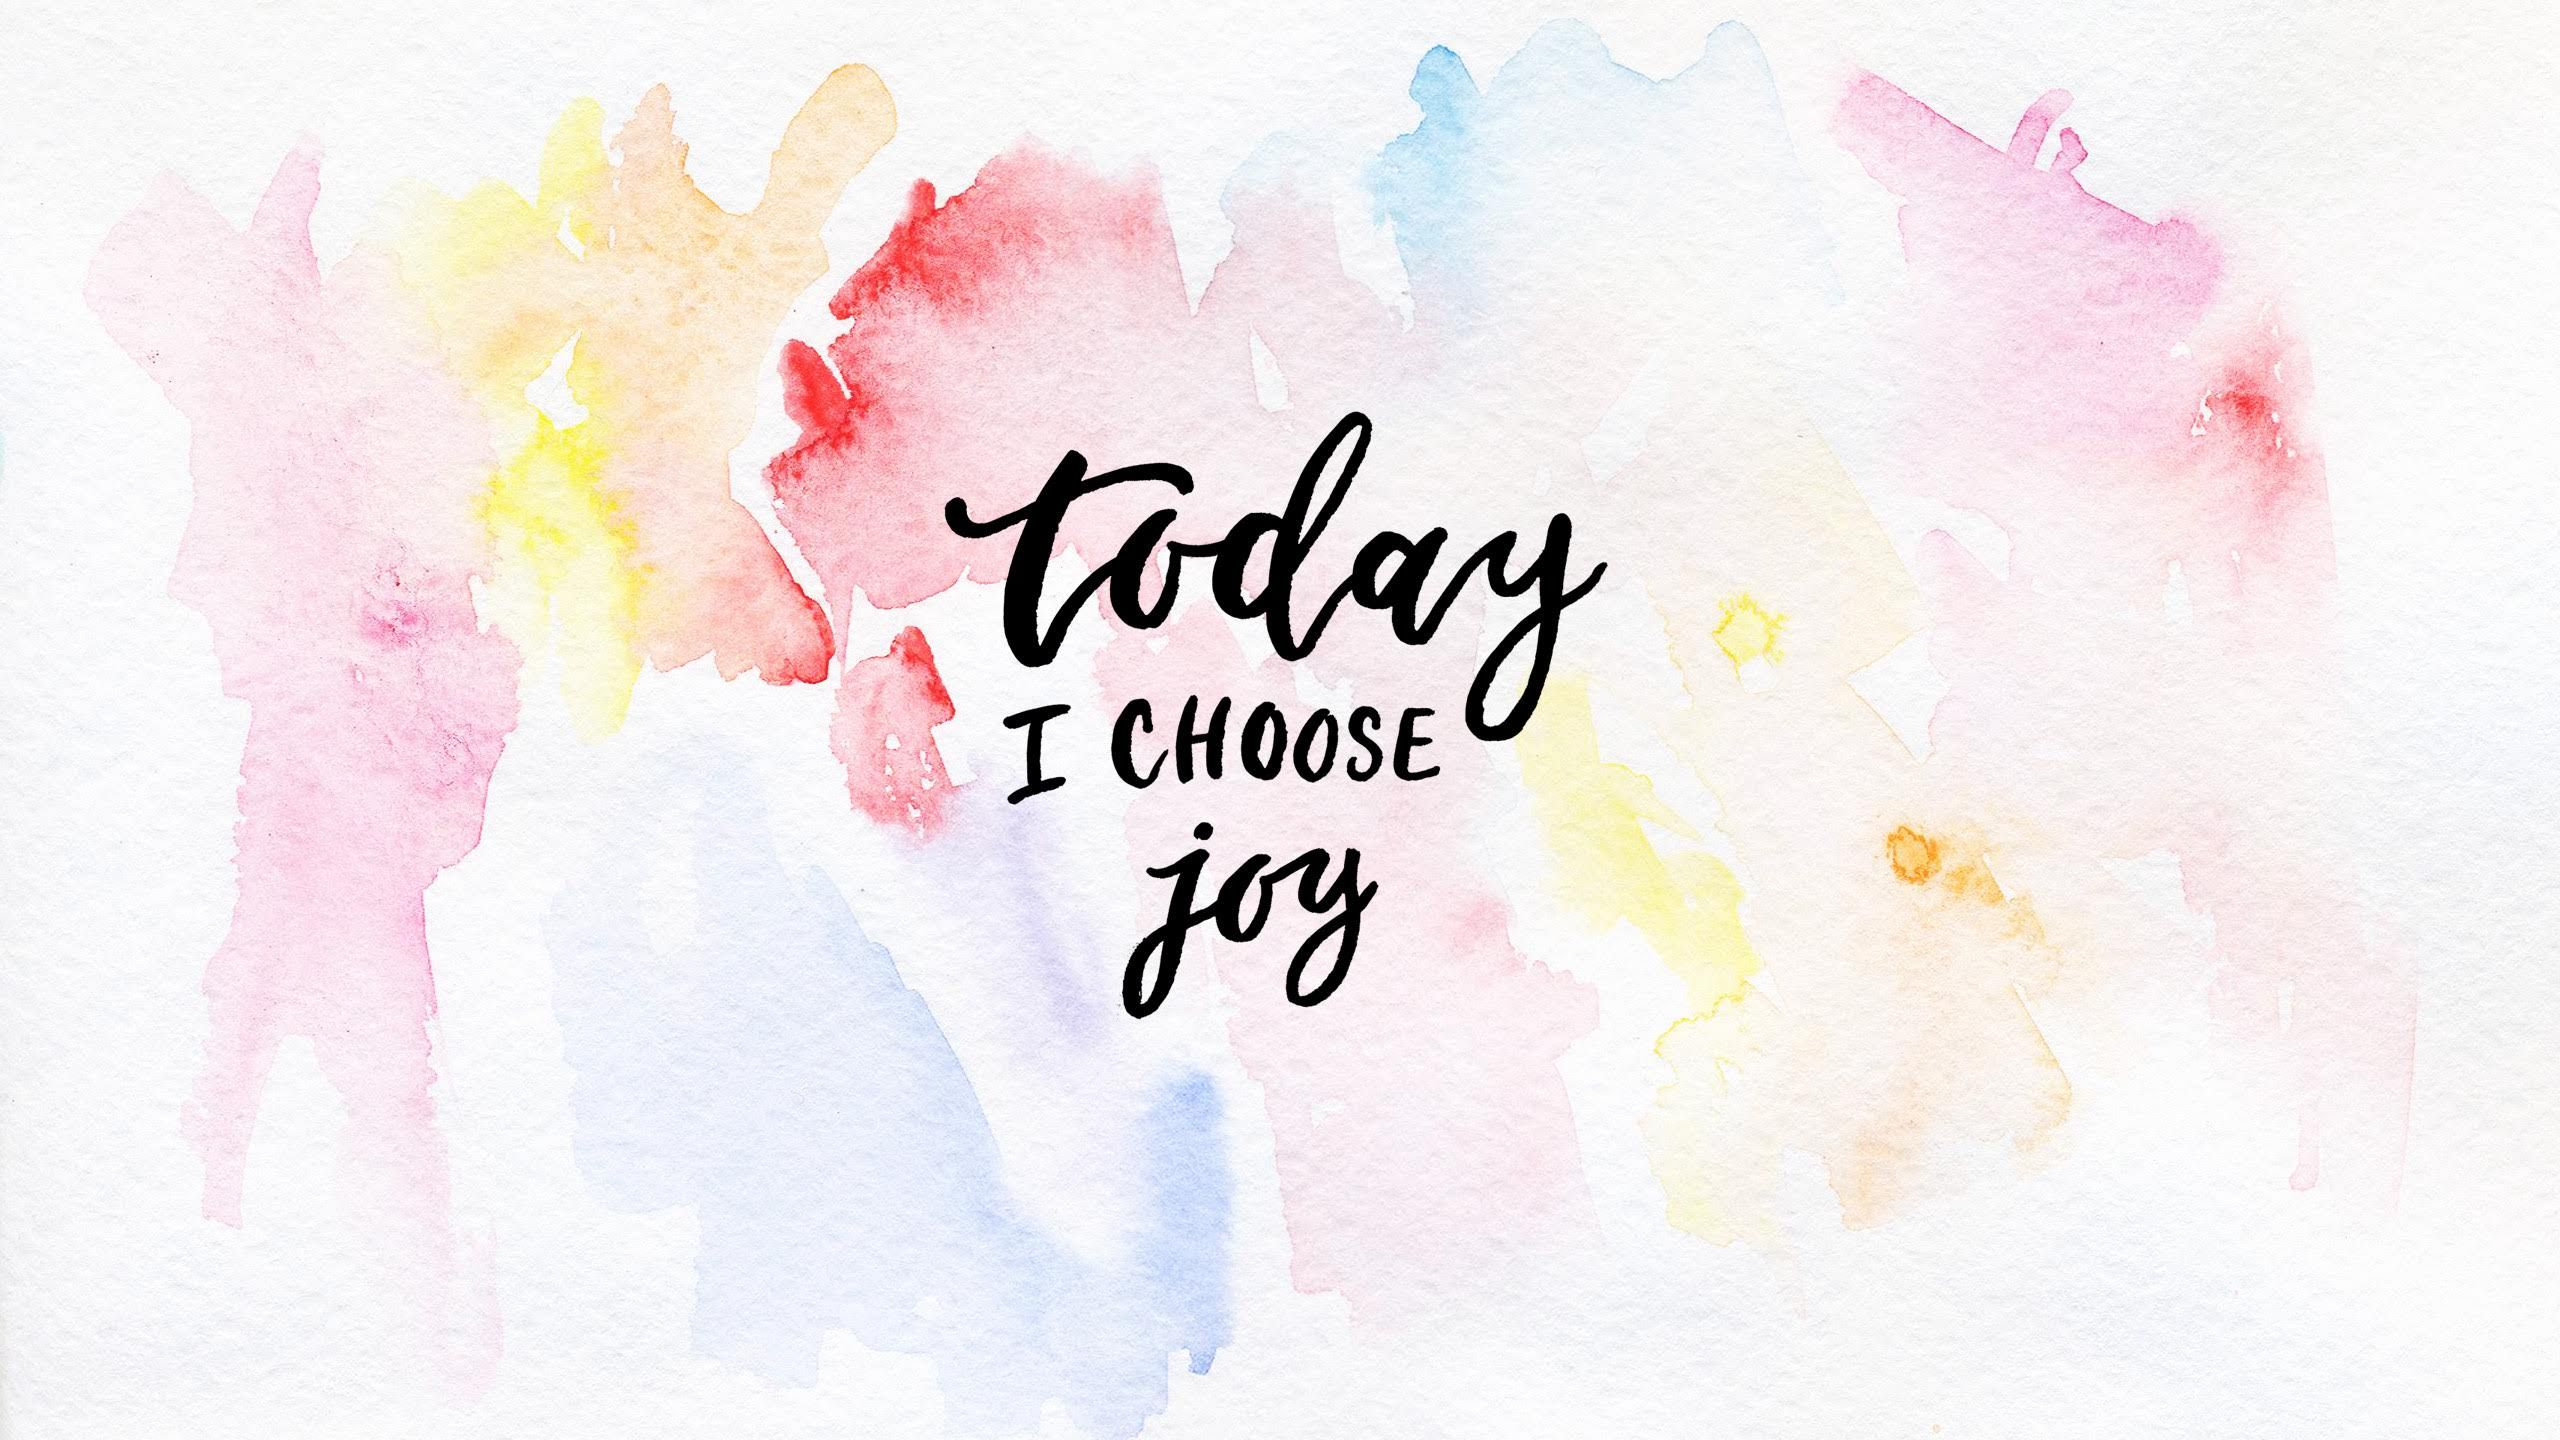 Pin By Tiffany Moore On Positive Quotes Laptop Wallpaper Quotes Laptop Wallpaper Desktop Wallpapers Watercolor Desktop Wallpaper